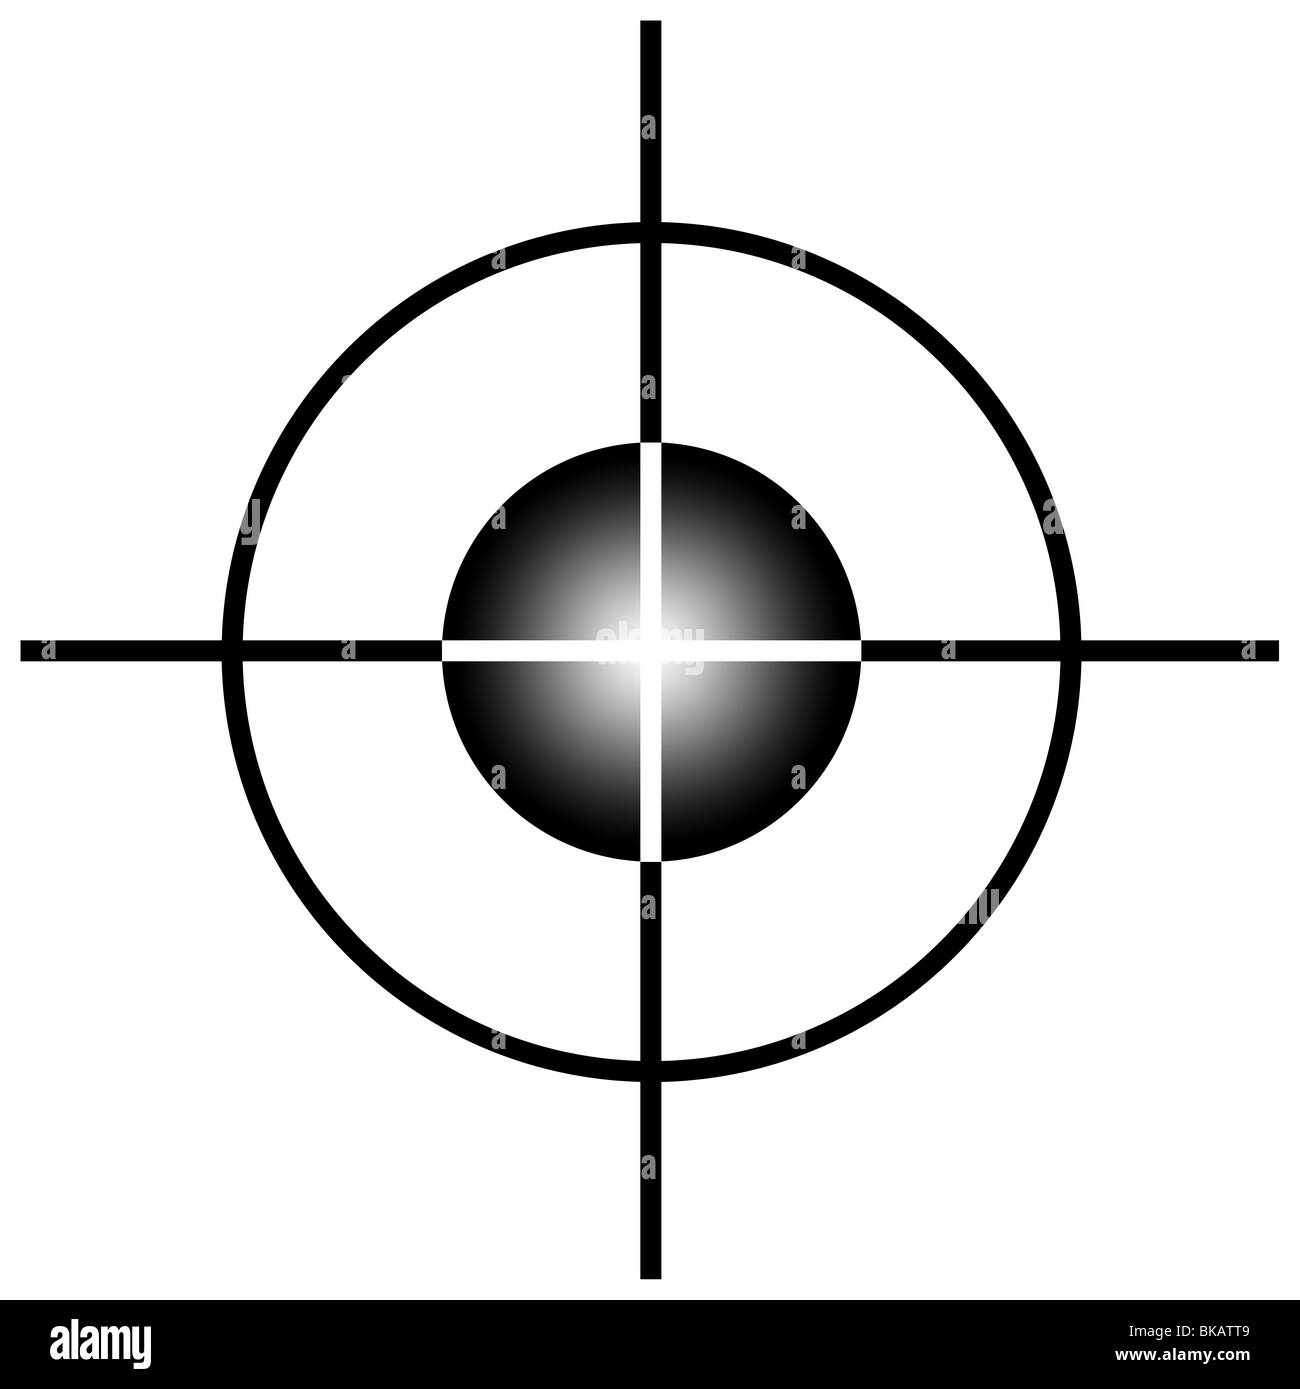 Sniper target scope or sight, isolated on white background. - Stock Image